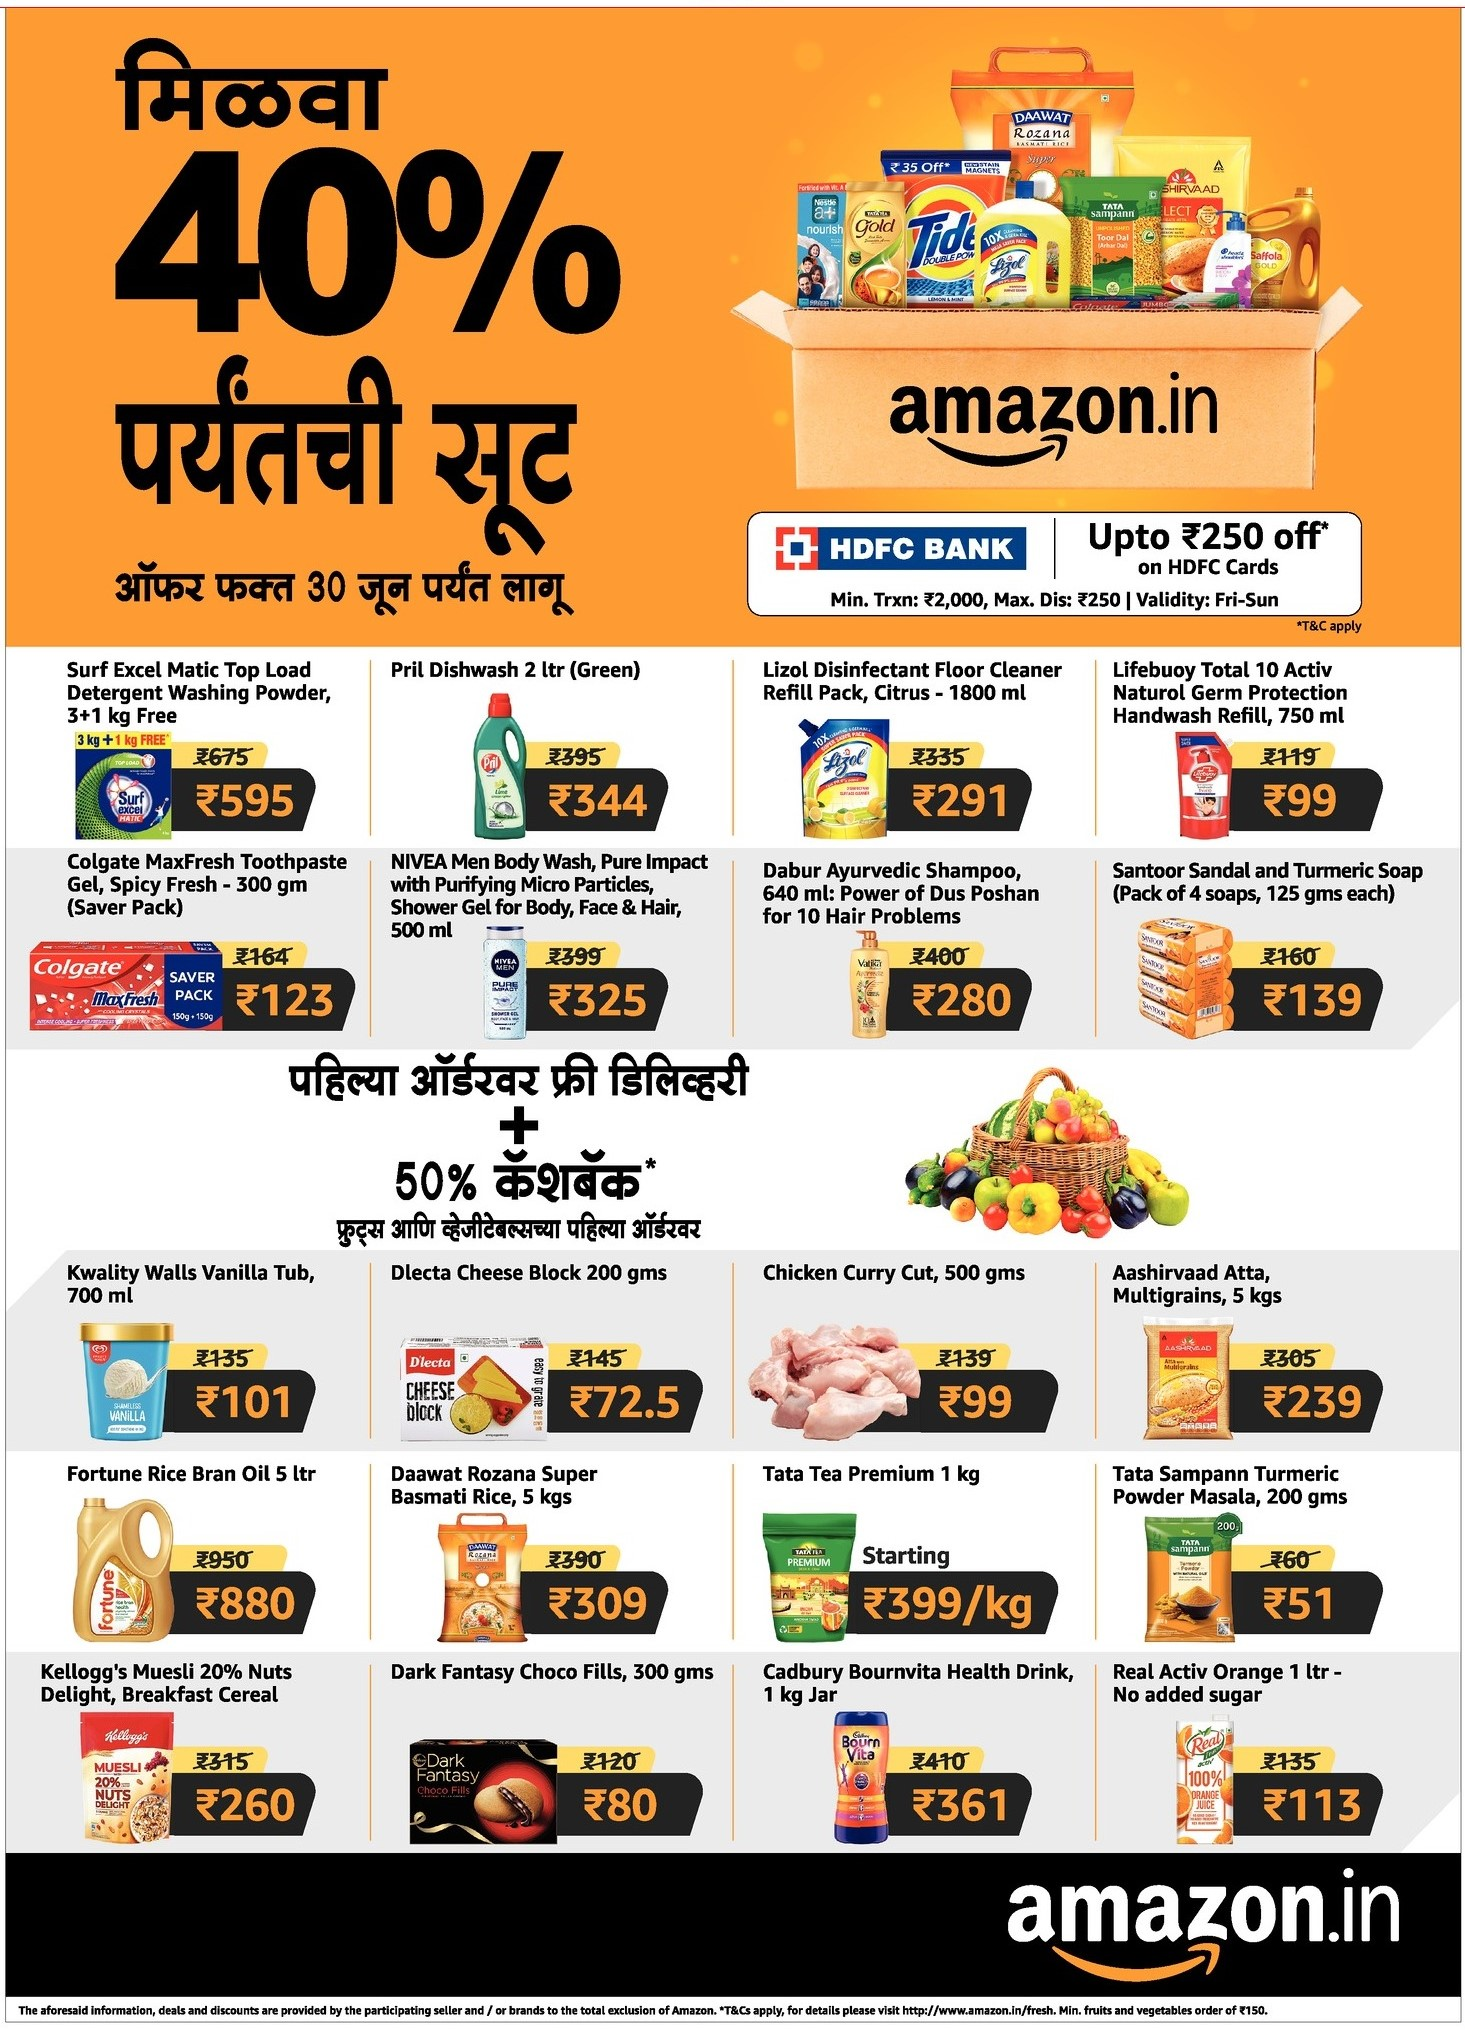 amazon-in-upto-rupees-250-off-on-hdfc-cards-ad-lokmat-mumbai-19-06-2021